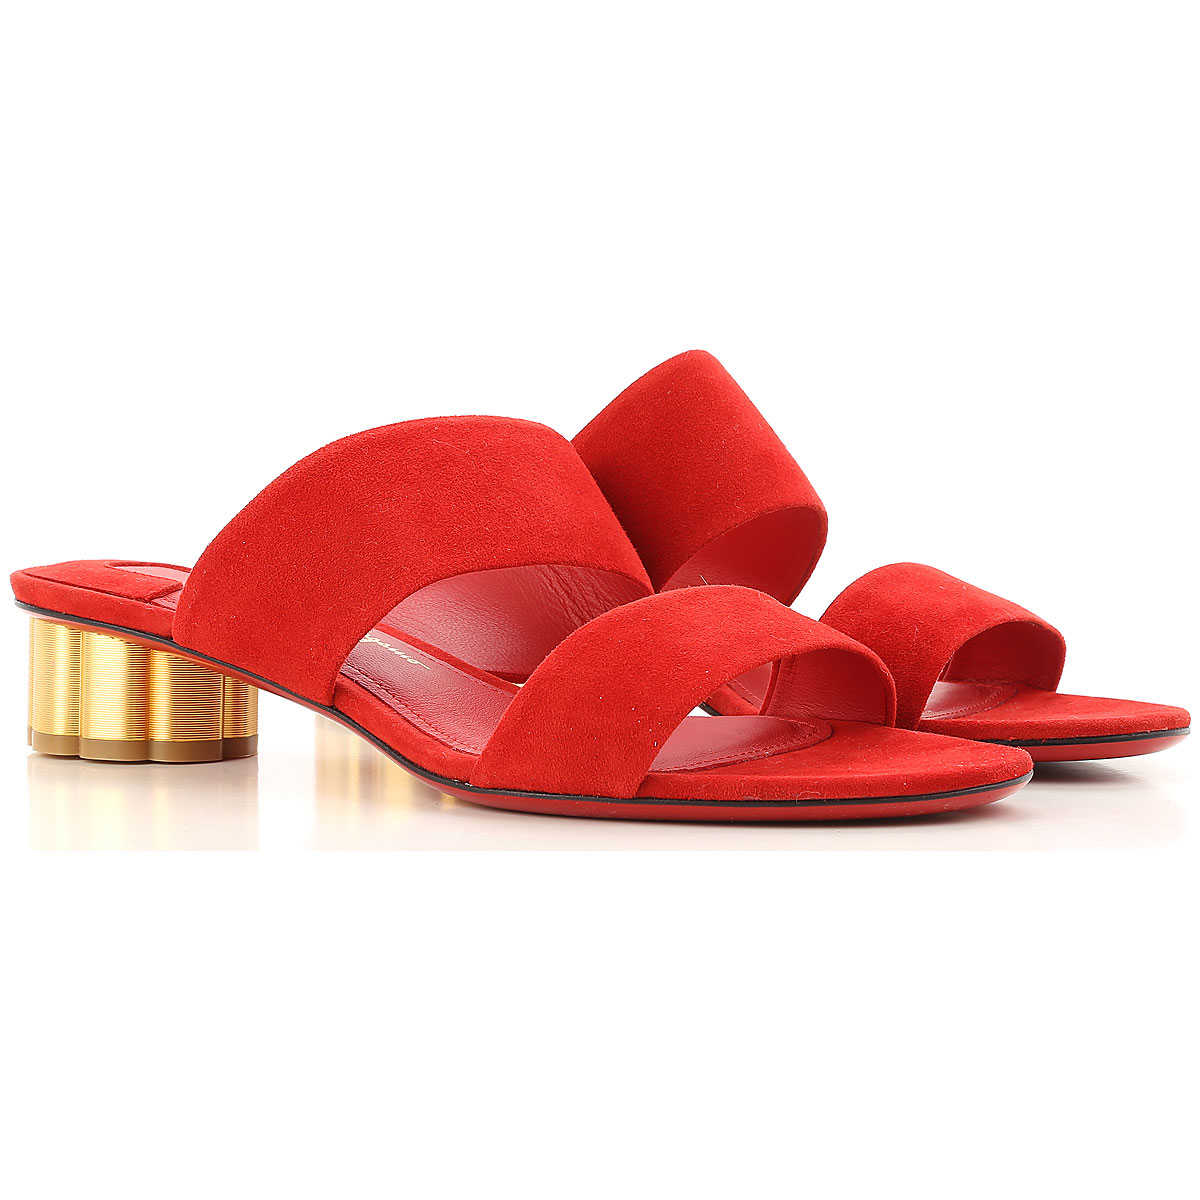 Salvatore Ferragamo Sandals for Women On Sale in Outlet Red SE - GOOFASH